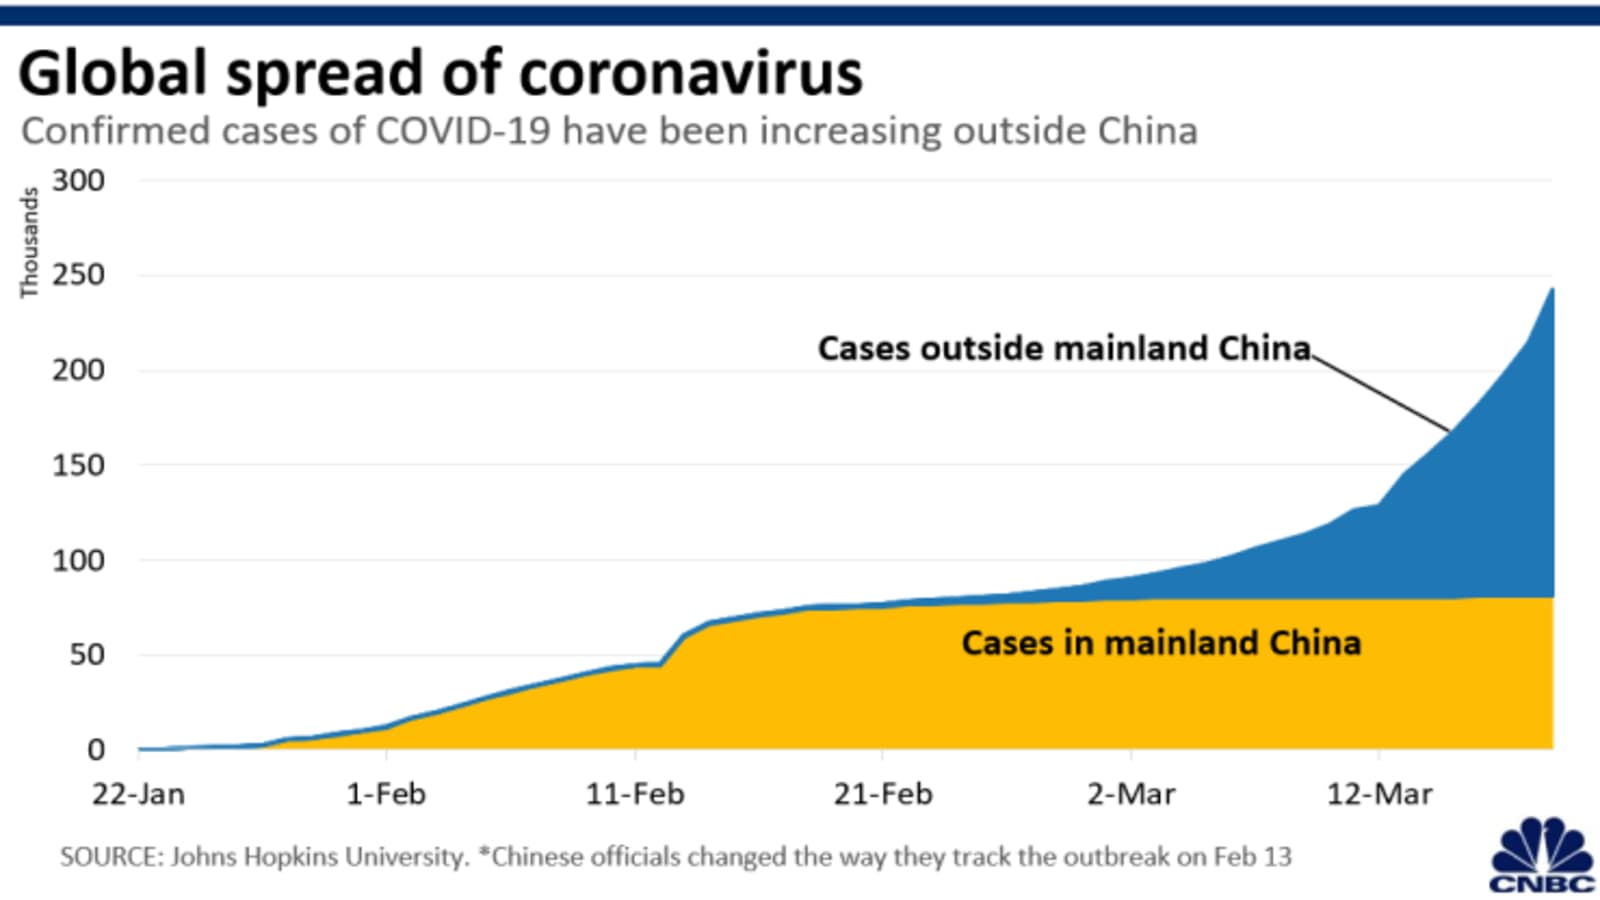 https://image.cnbcfm.com/api/v1/image/106369525-1581905145976global_virus_spread.png?v=1581905065&w=1600&h=900